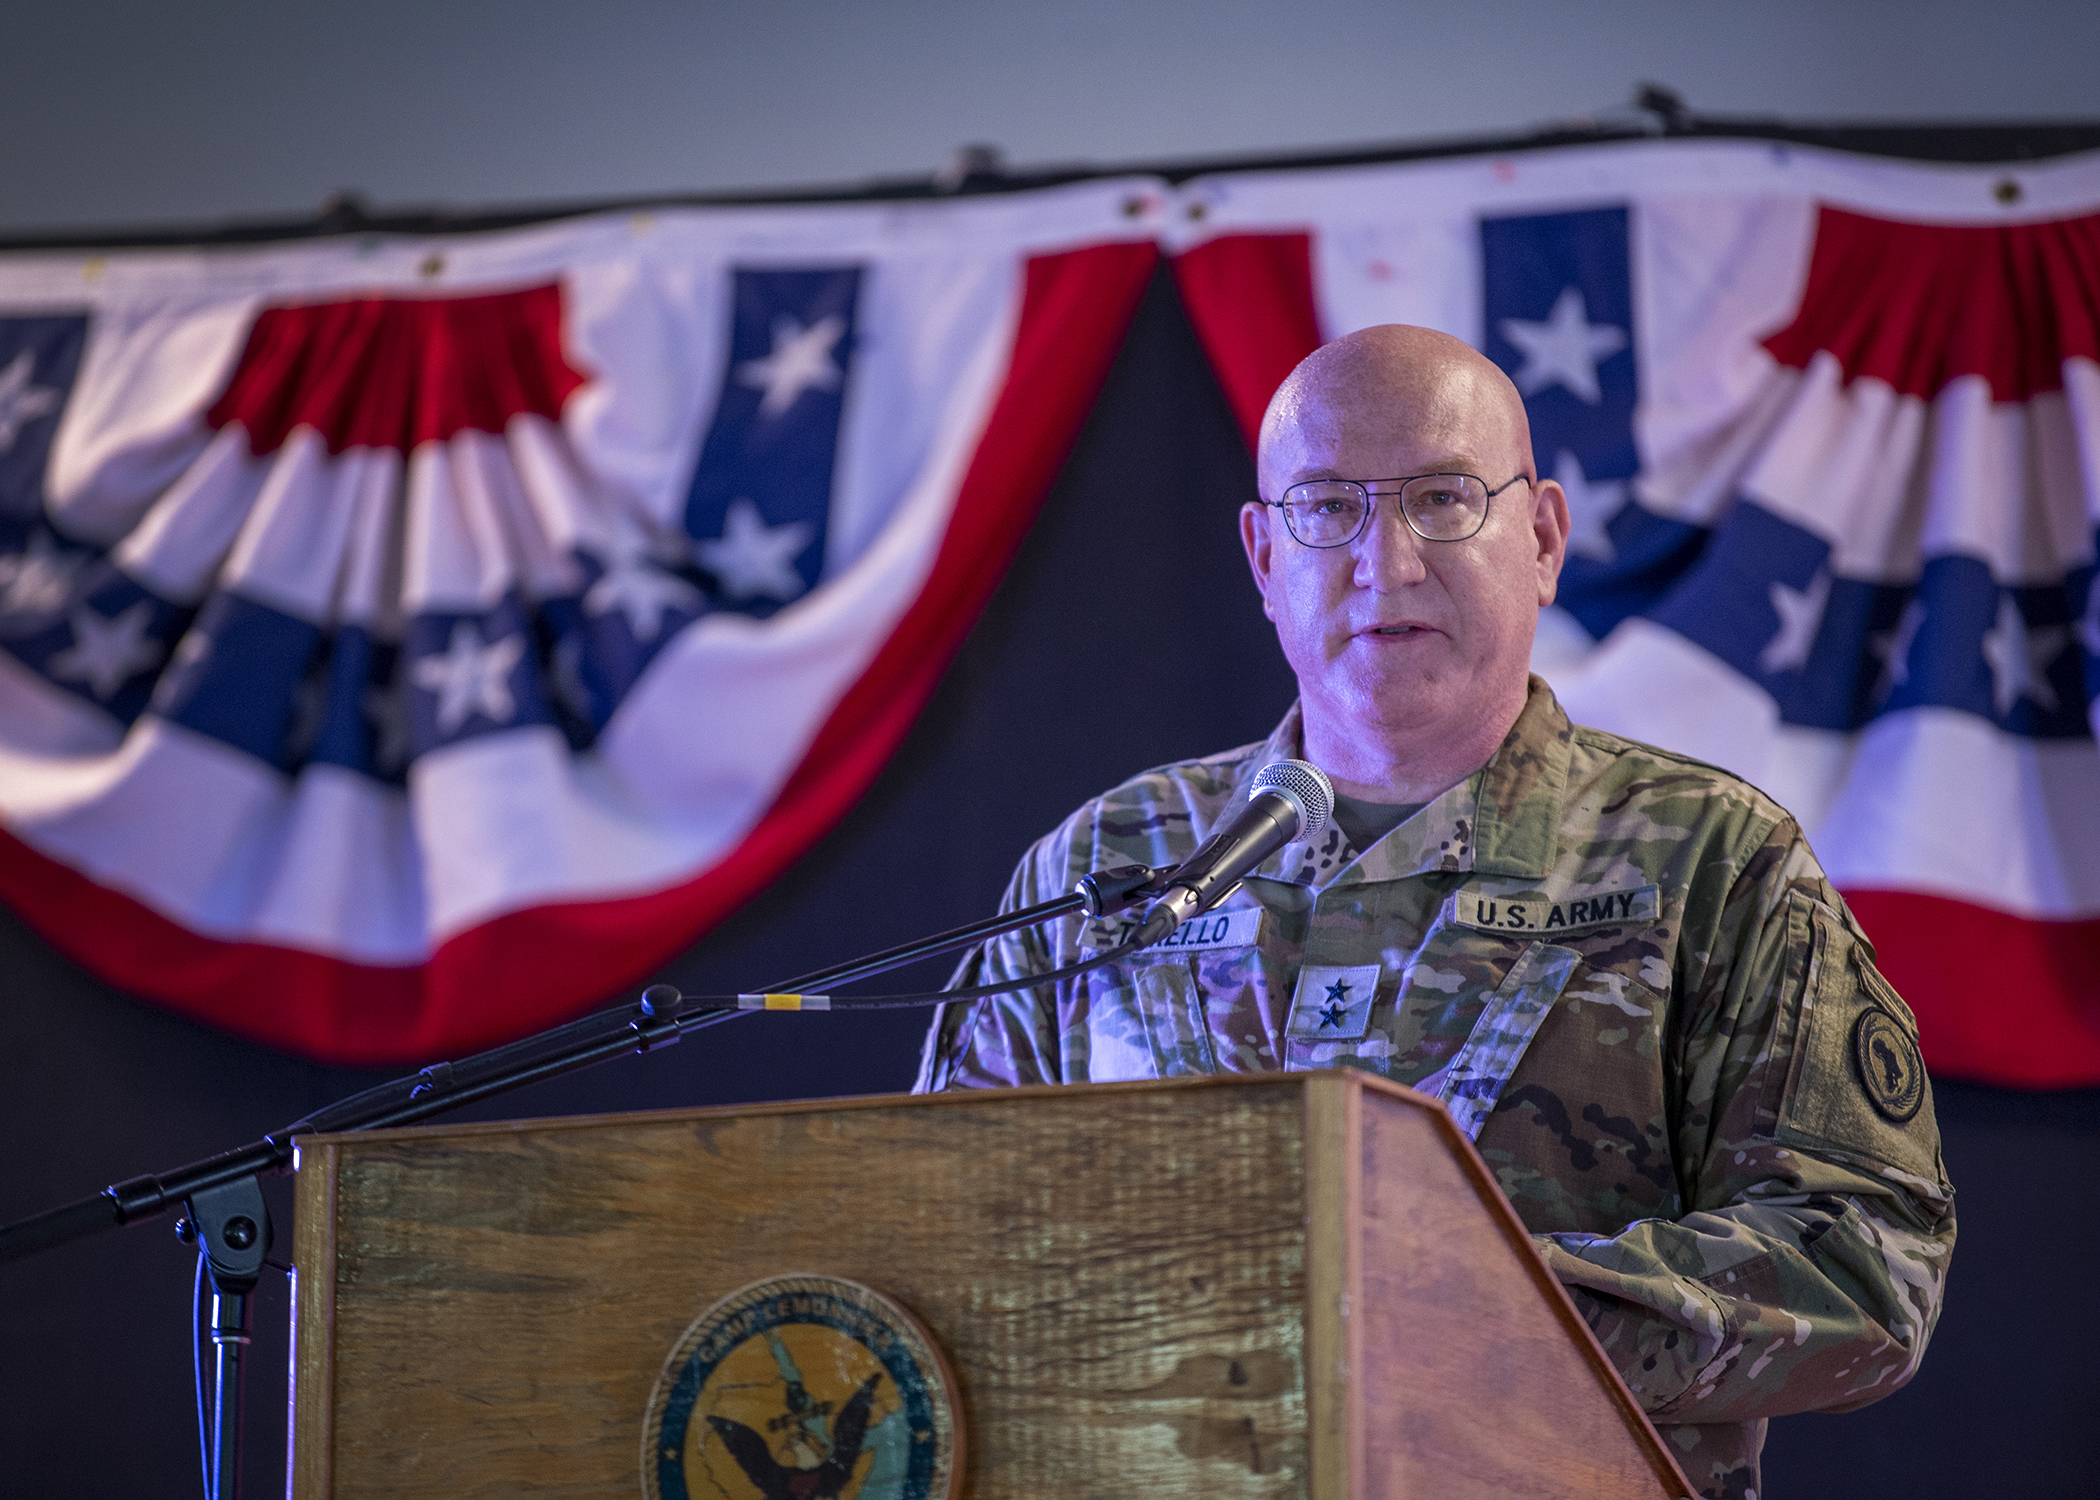 U.S. Army Maj. Gen. Michael D. Turello, commanding general, Combined Joint Task Force-Horn of Africa (CJTF-HOA), gives remarks during a change of command ceremony at Camp Lemonnier, Djibouti, June 12, 2019. Turello will now be responsible for overseeing CJTF-HOA's efforts in continuing to develop enduring partnerships, helping to build the defense capabilities of African partners and regional organizations, and the ongoing efforts to deter and defeat threats operating in Africa. (U.S. Air Force photo by Tech. Sgt. Shawn Nickel)